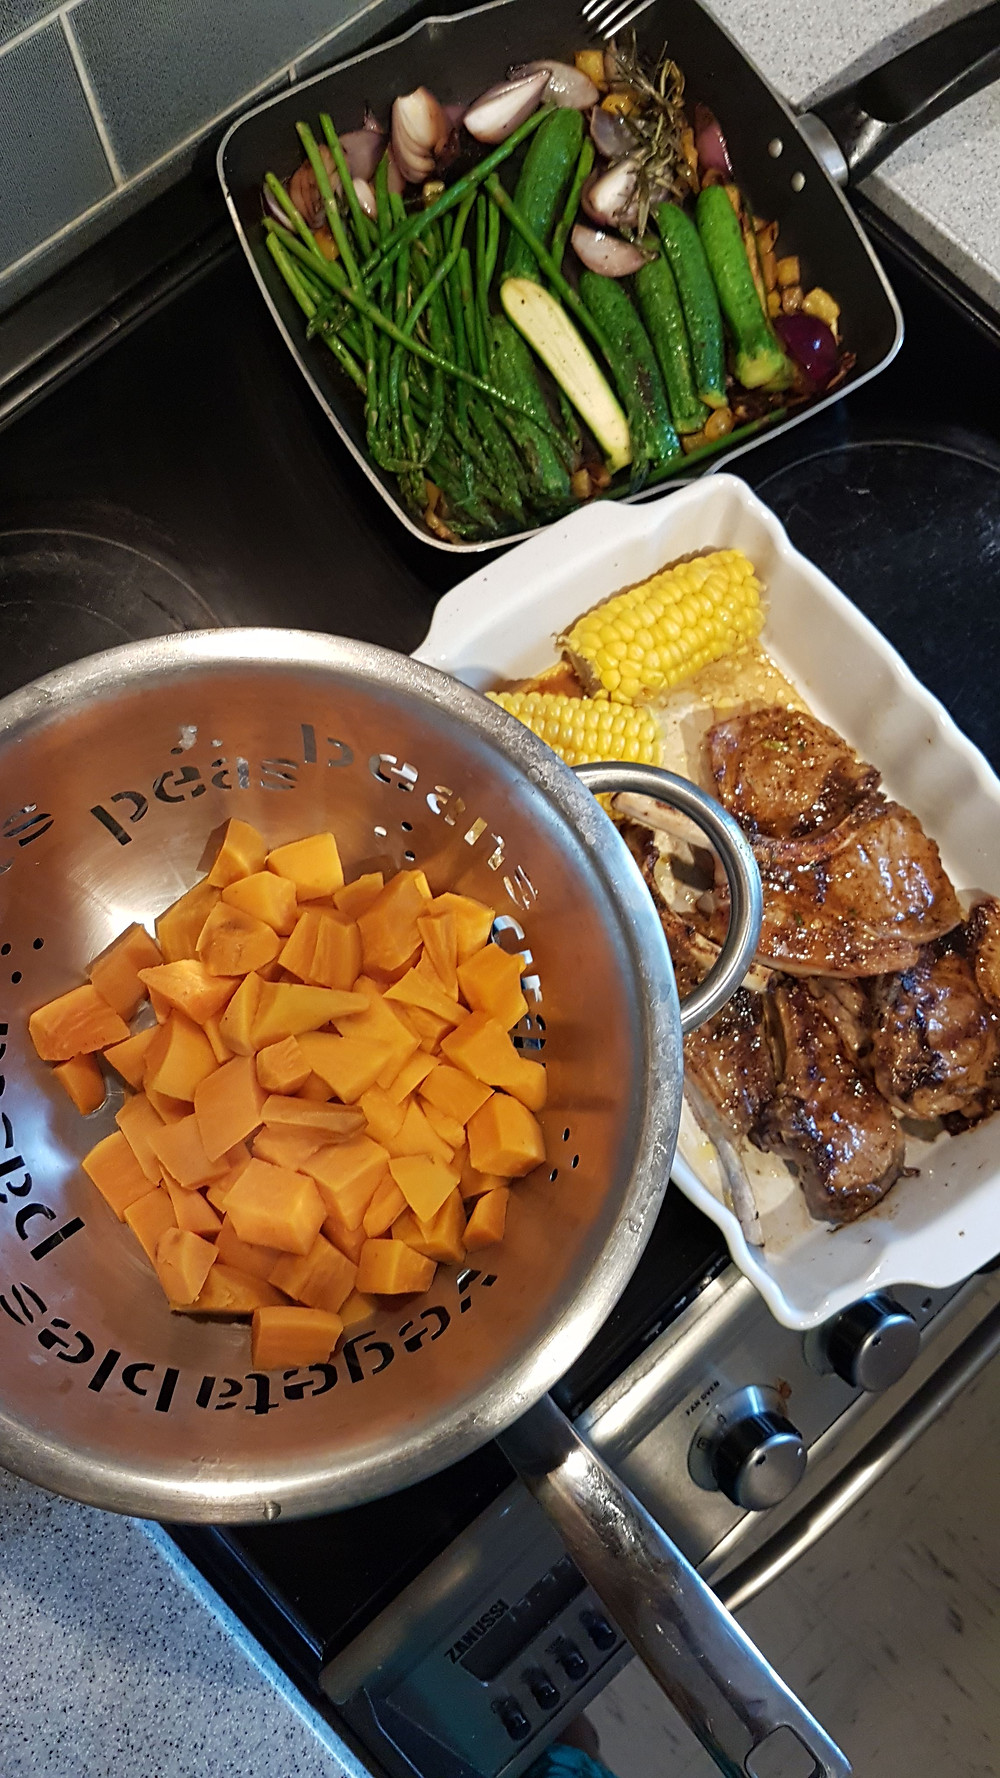 Sweet potato, corn, meat and vegetables